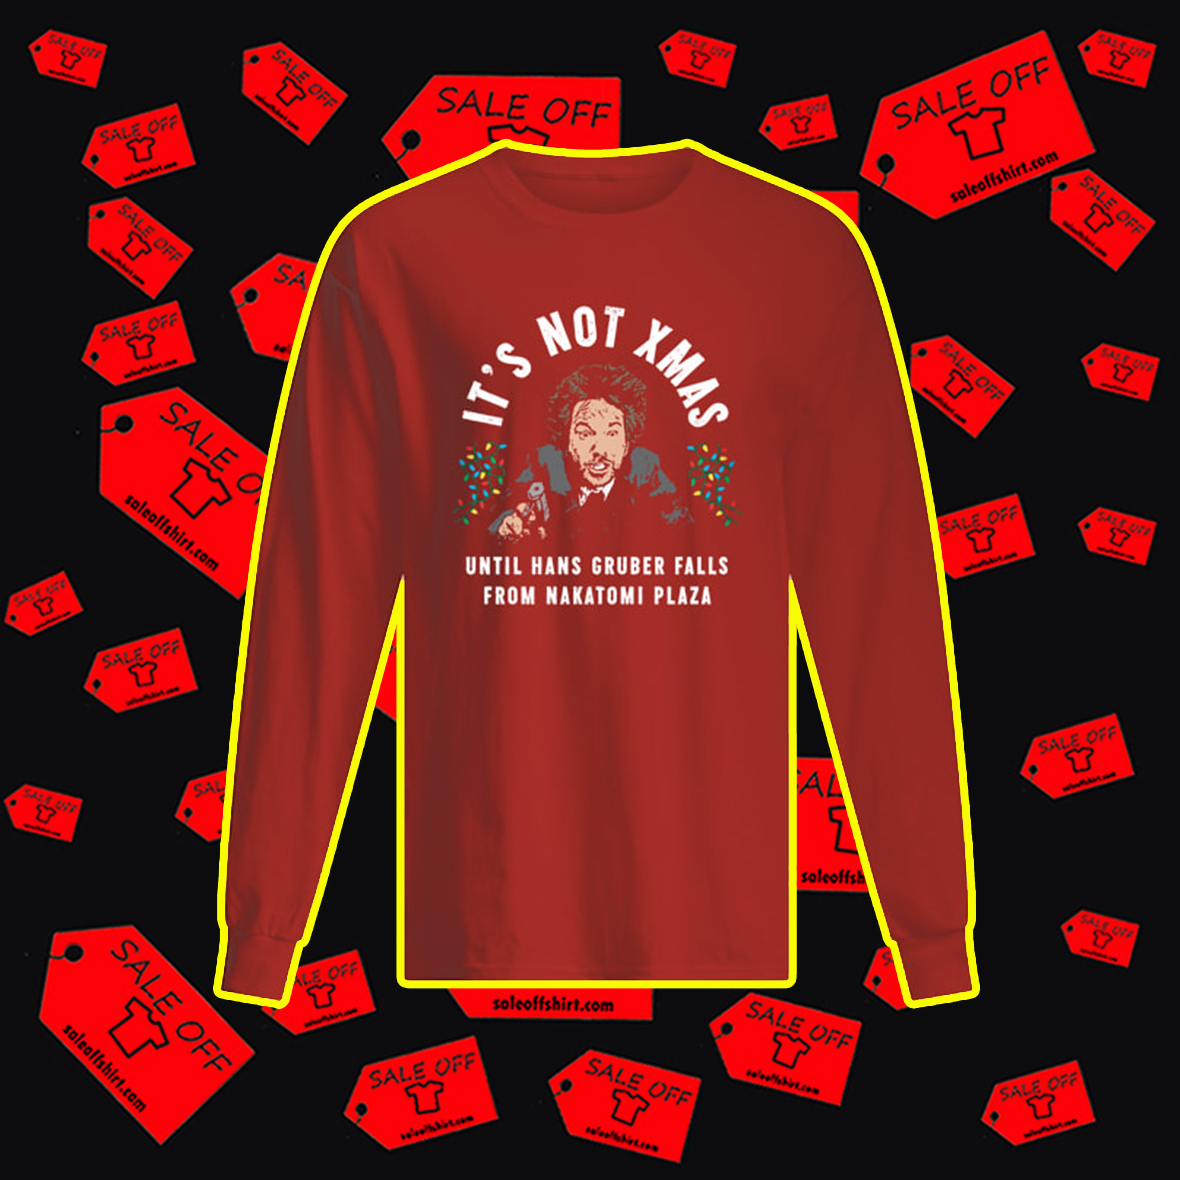 It's Not Xmas Until Hans Gruber Falls From Nakatomi Plaza longsleeve tee